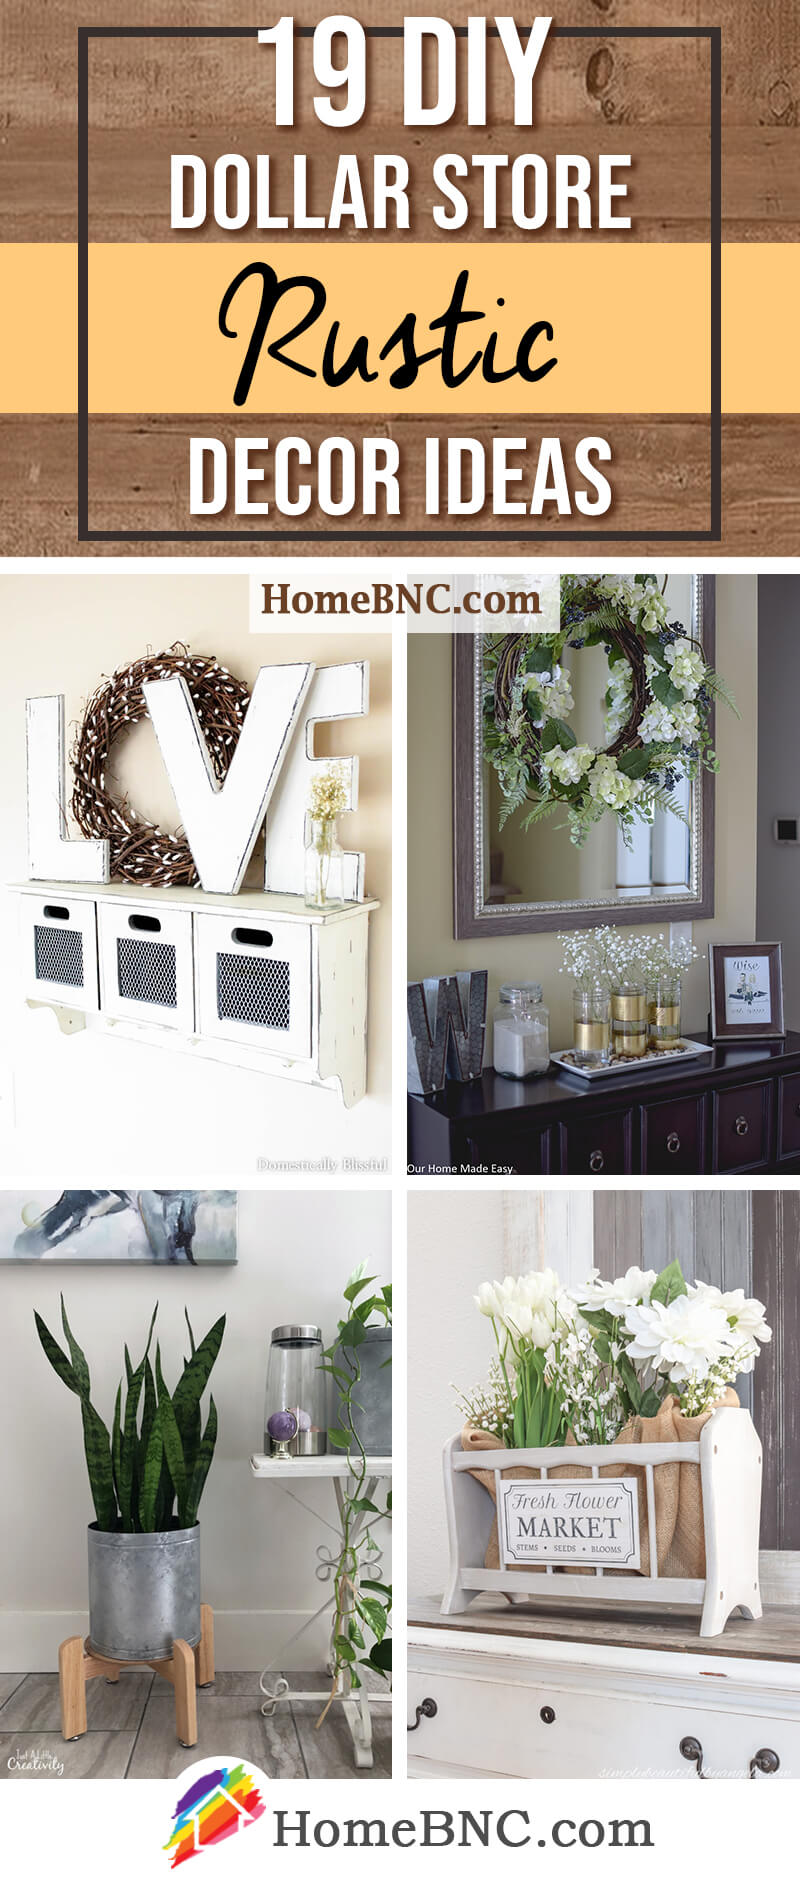 20 Best DIY Dollar Store Rustic Home Decor Ideas for 20